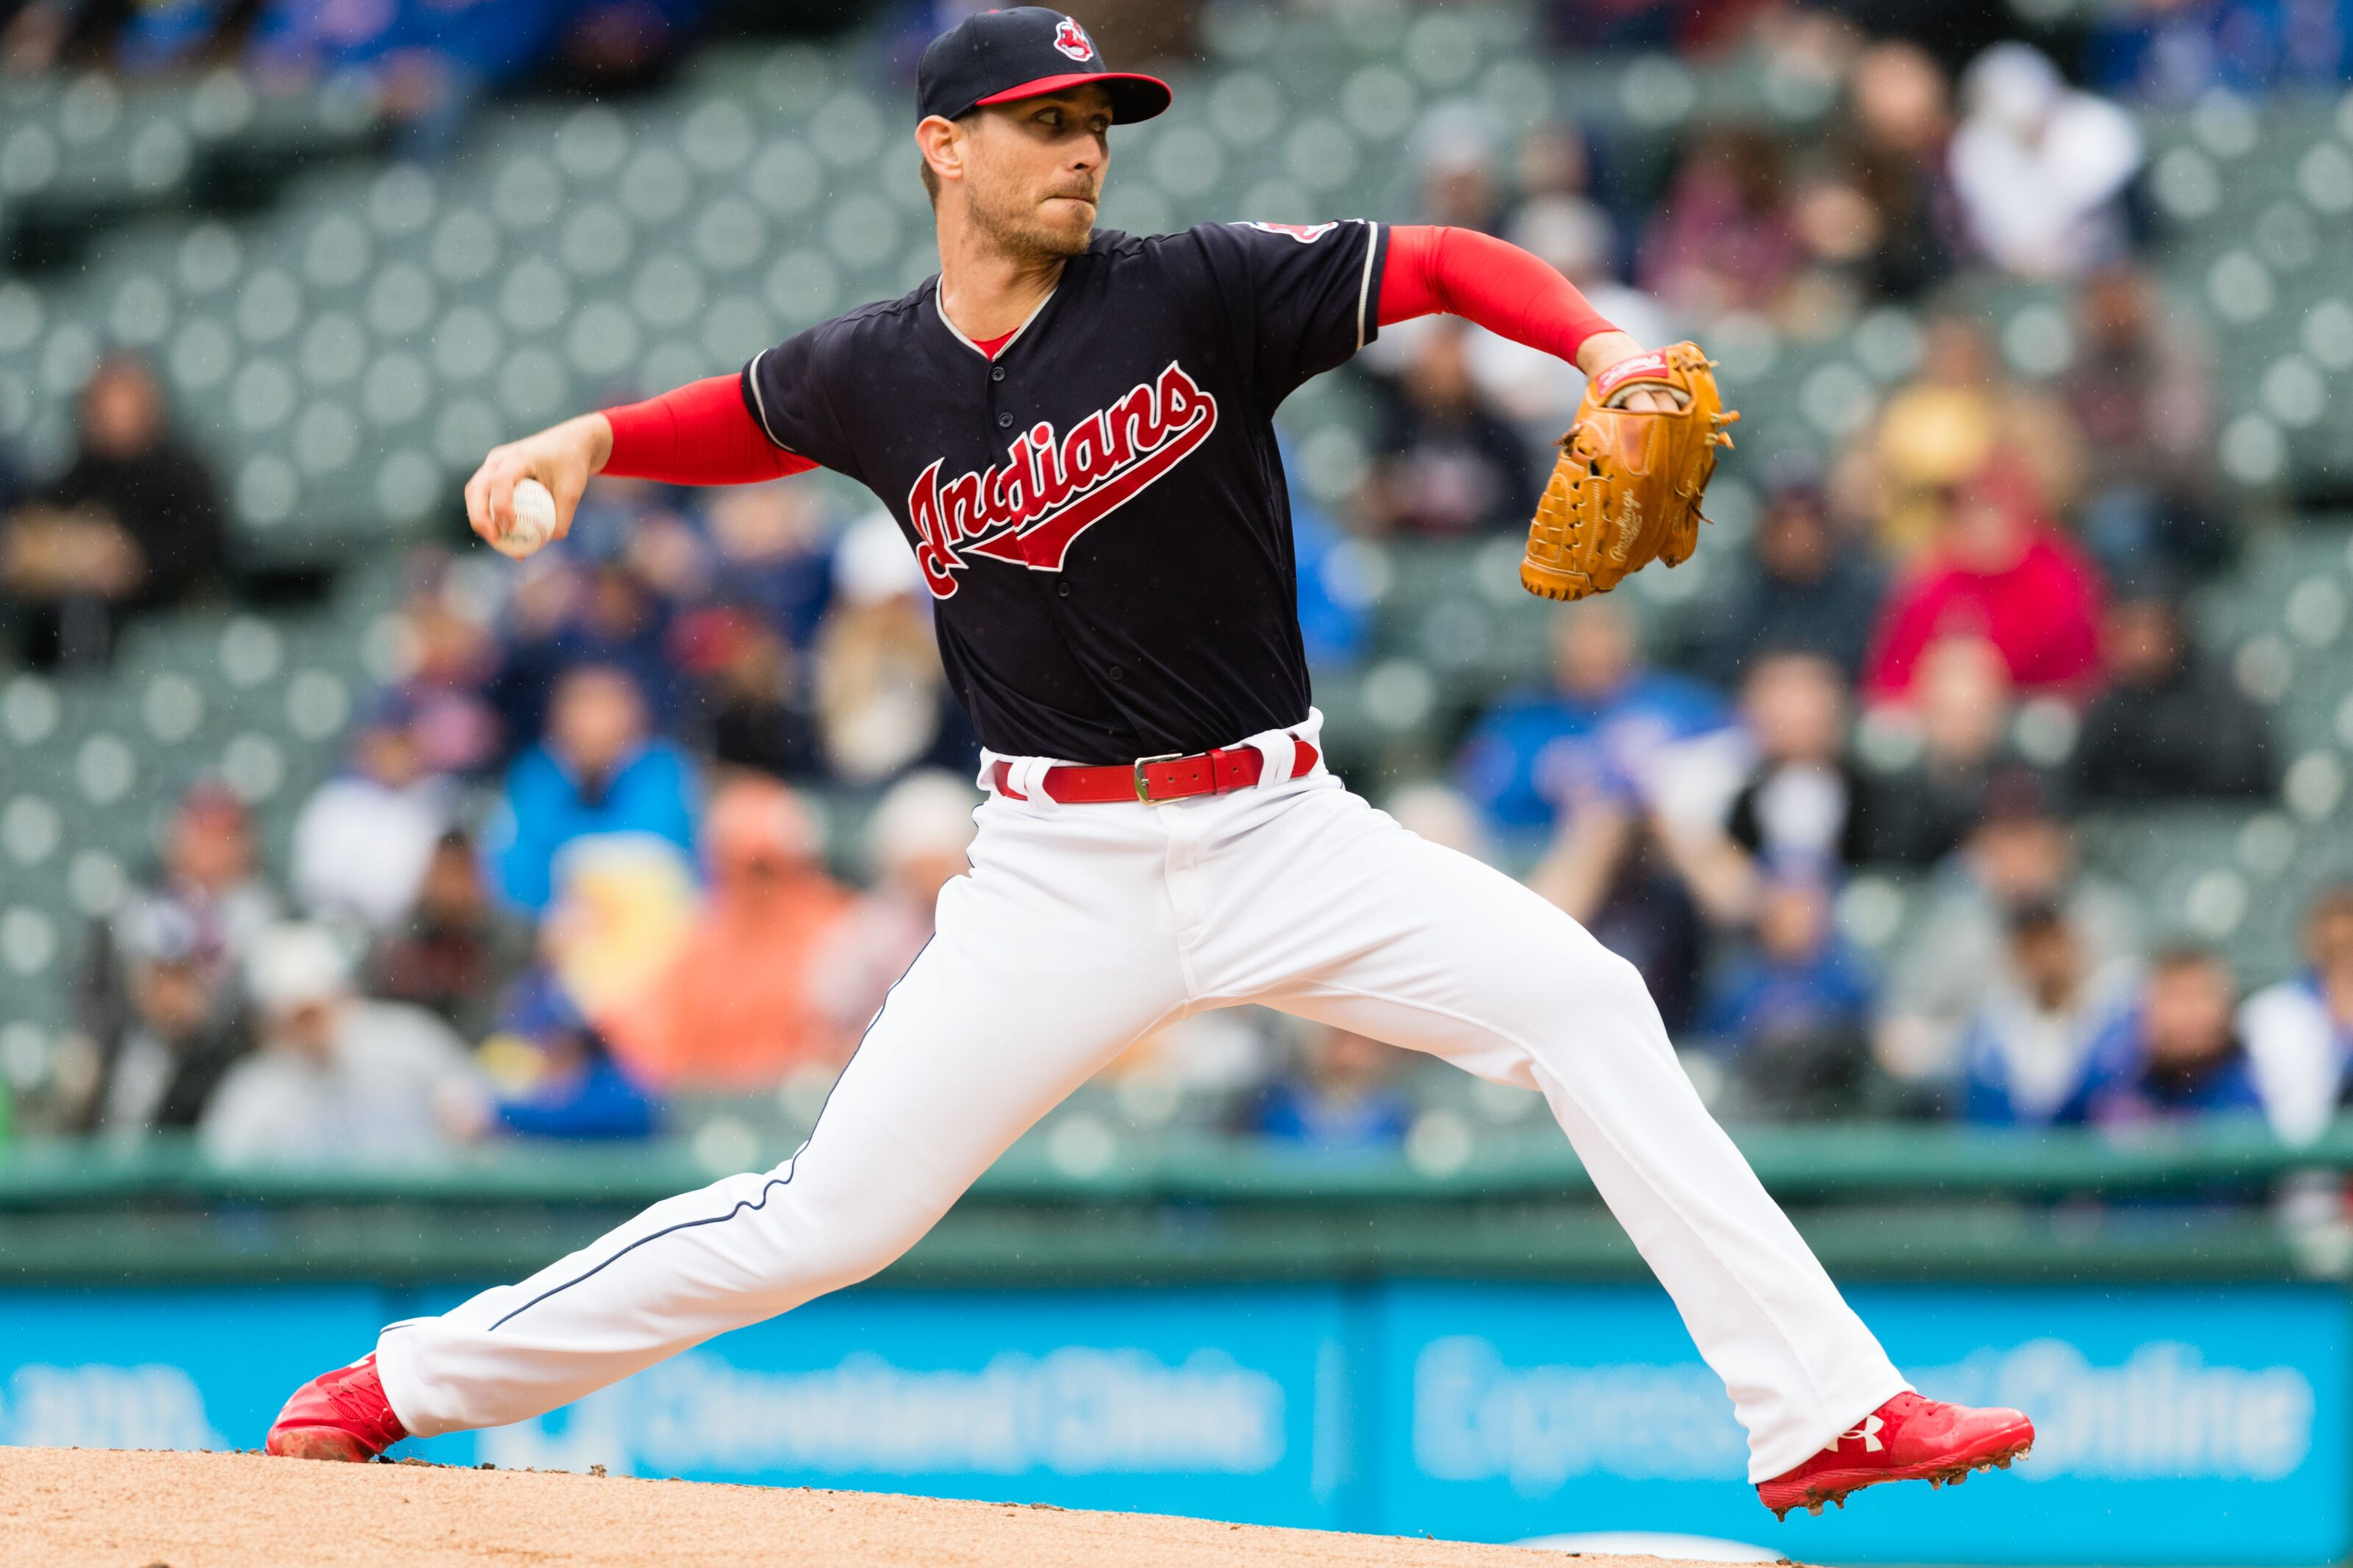 Cleveland Indians, Chicago Cubs: Josh Tomlin, Kyle